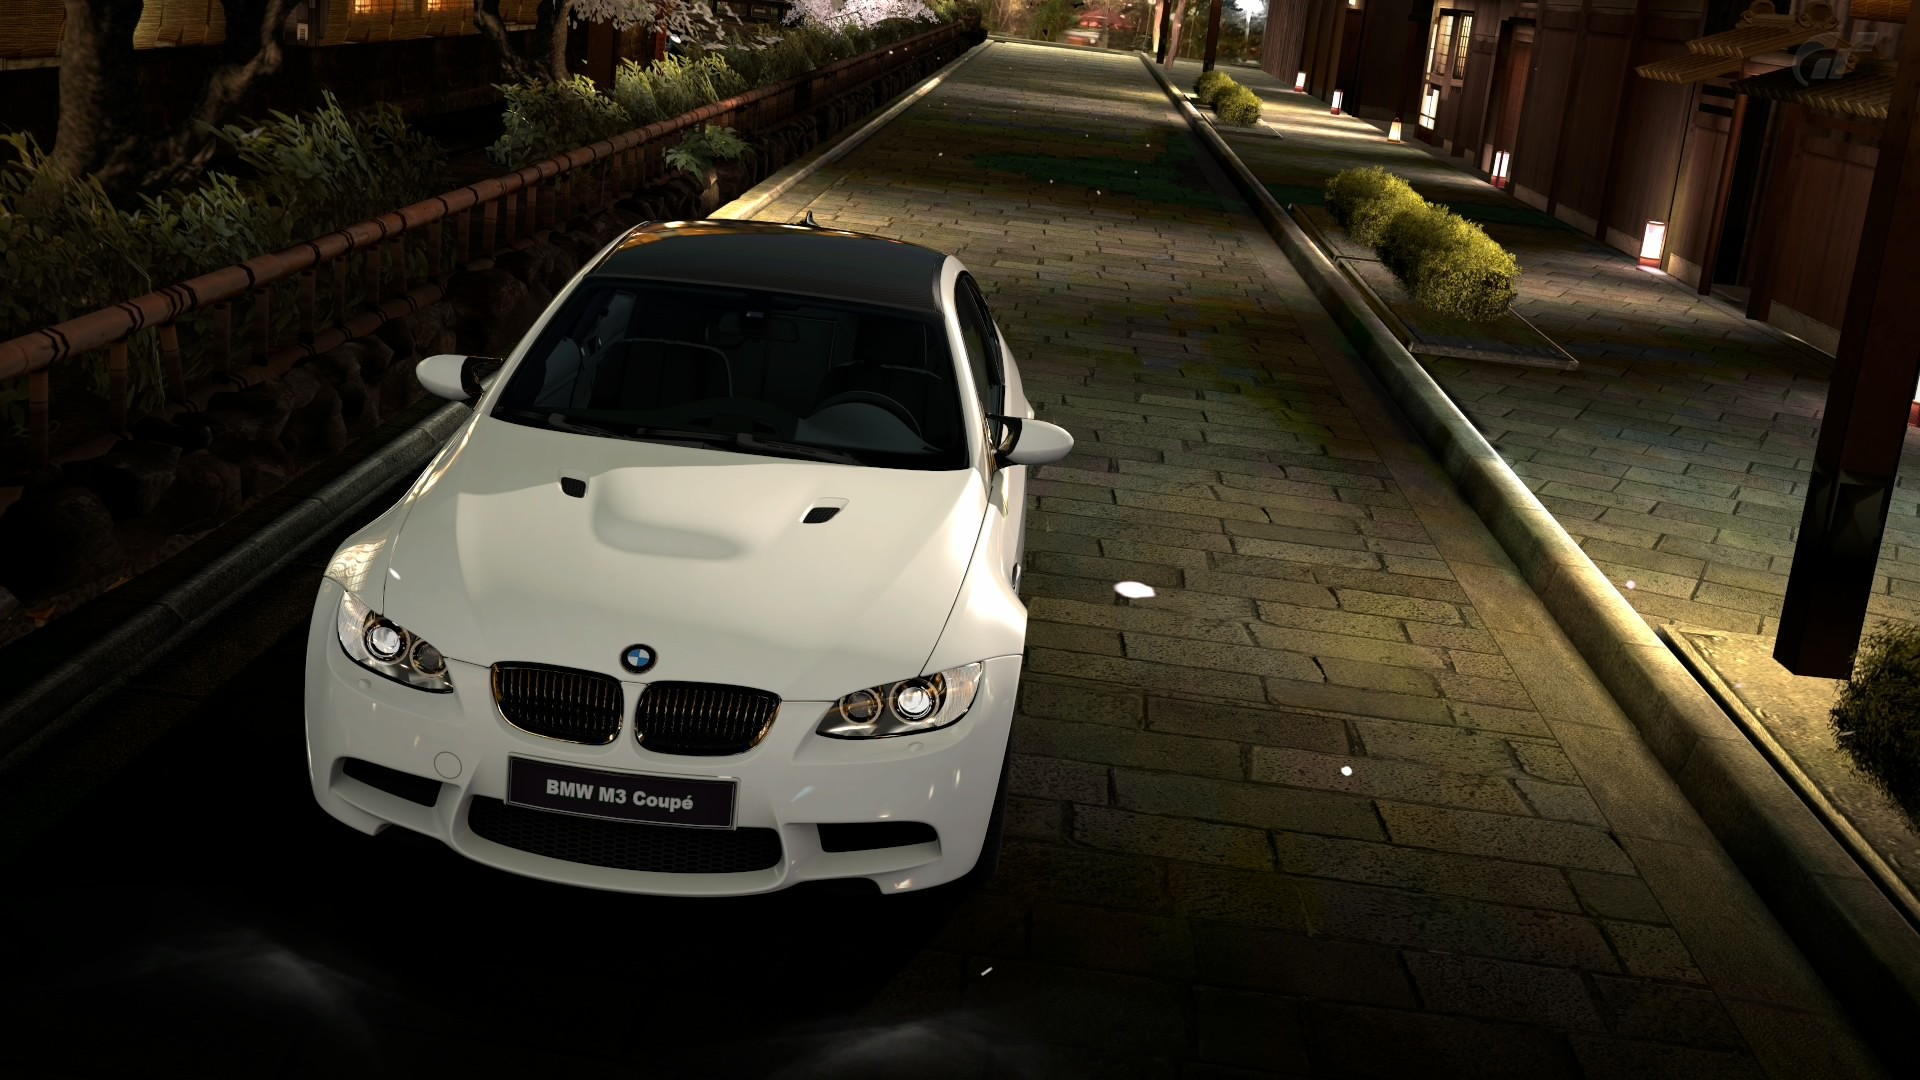 HD Wallpapers Bmw Cars